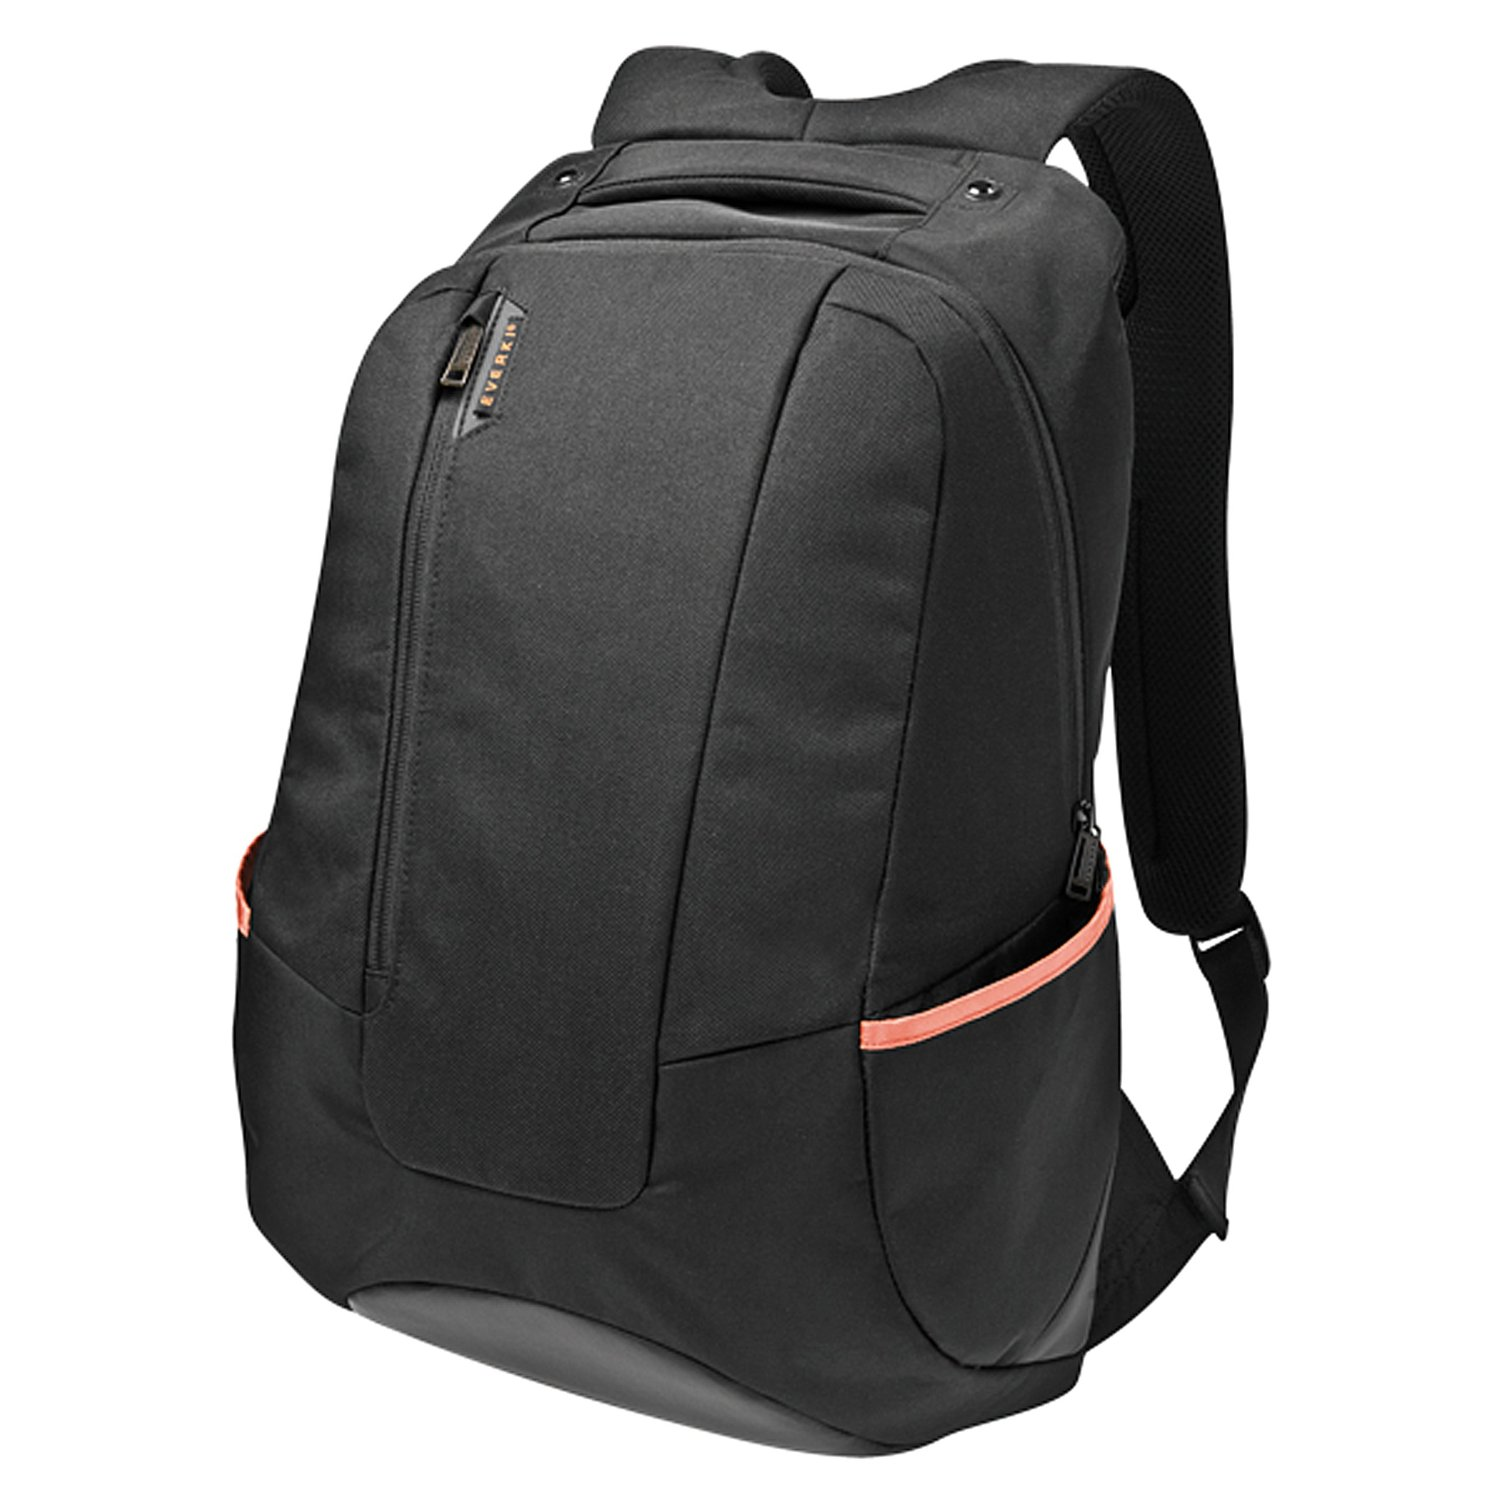 17 Inch Laptop Backpacks F8D2tyHl